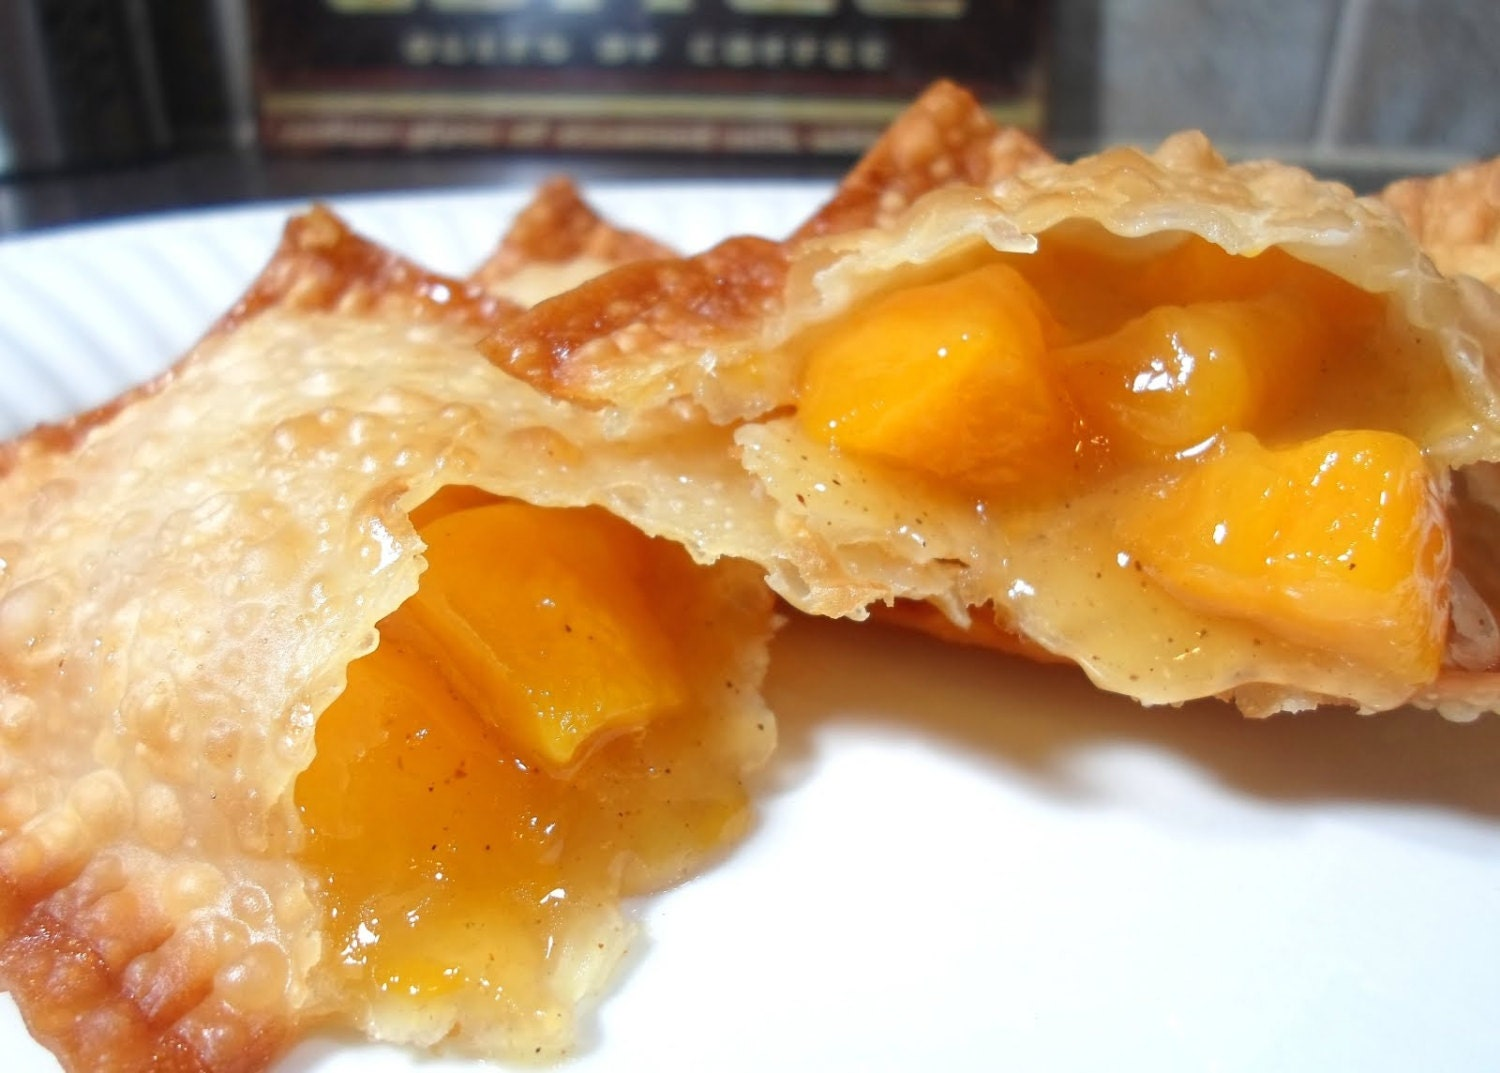 Fried Fruit Pies/fresh baked/homemade/edible baby by Manmaws